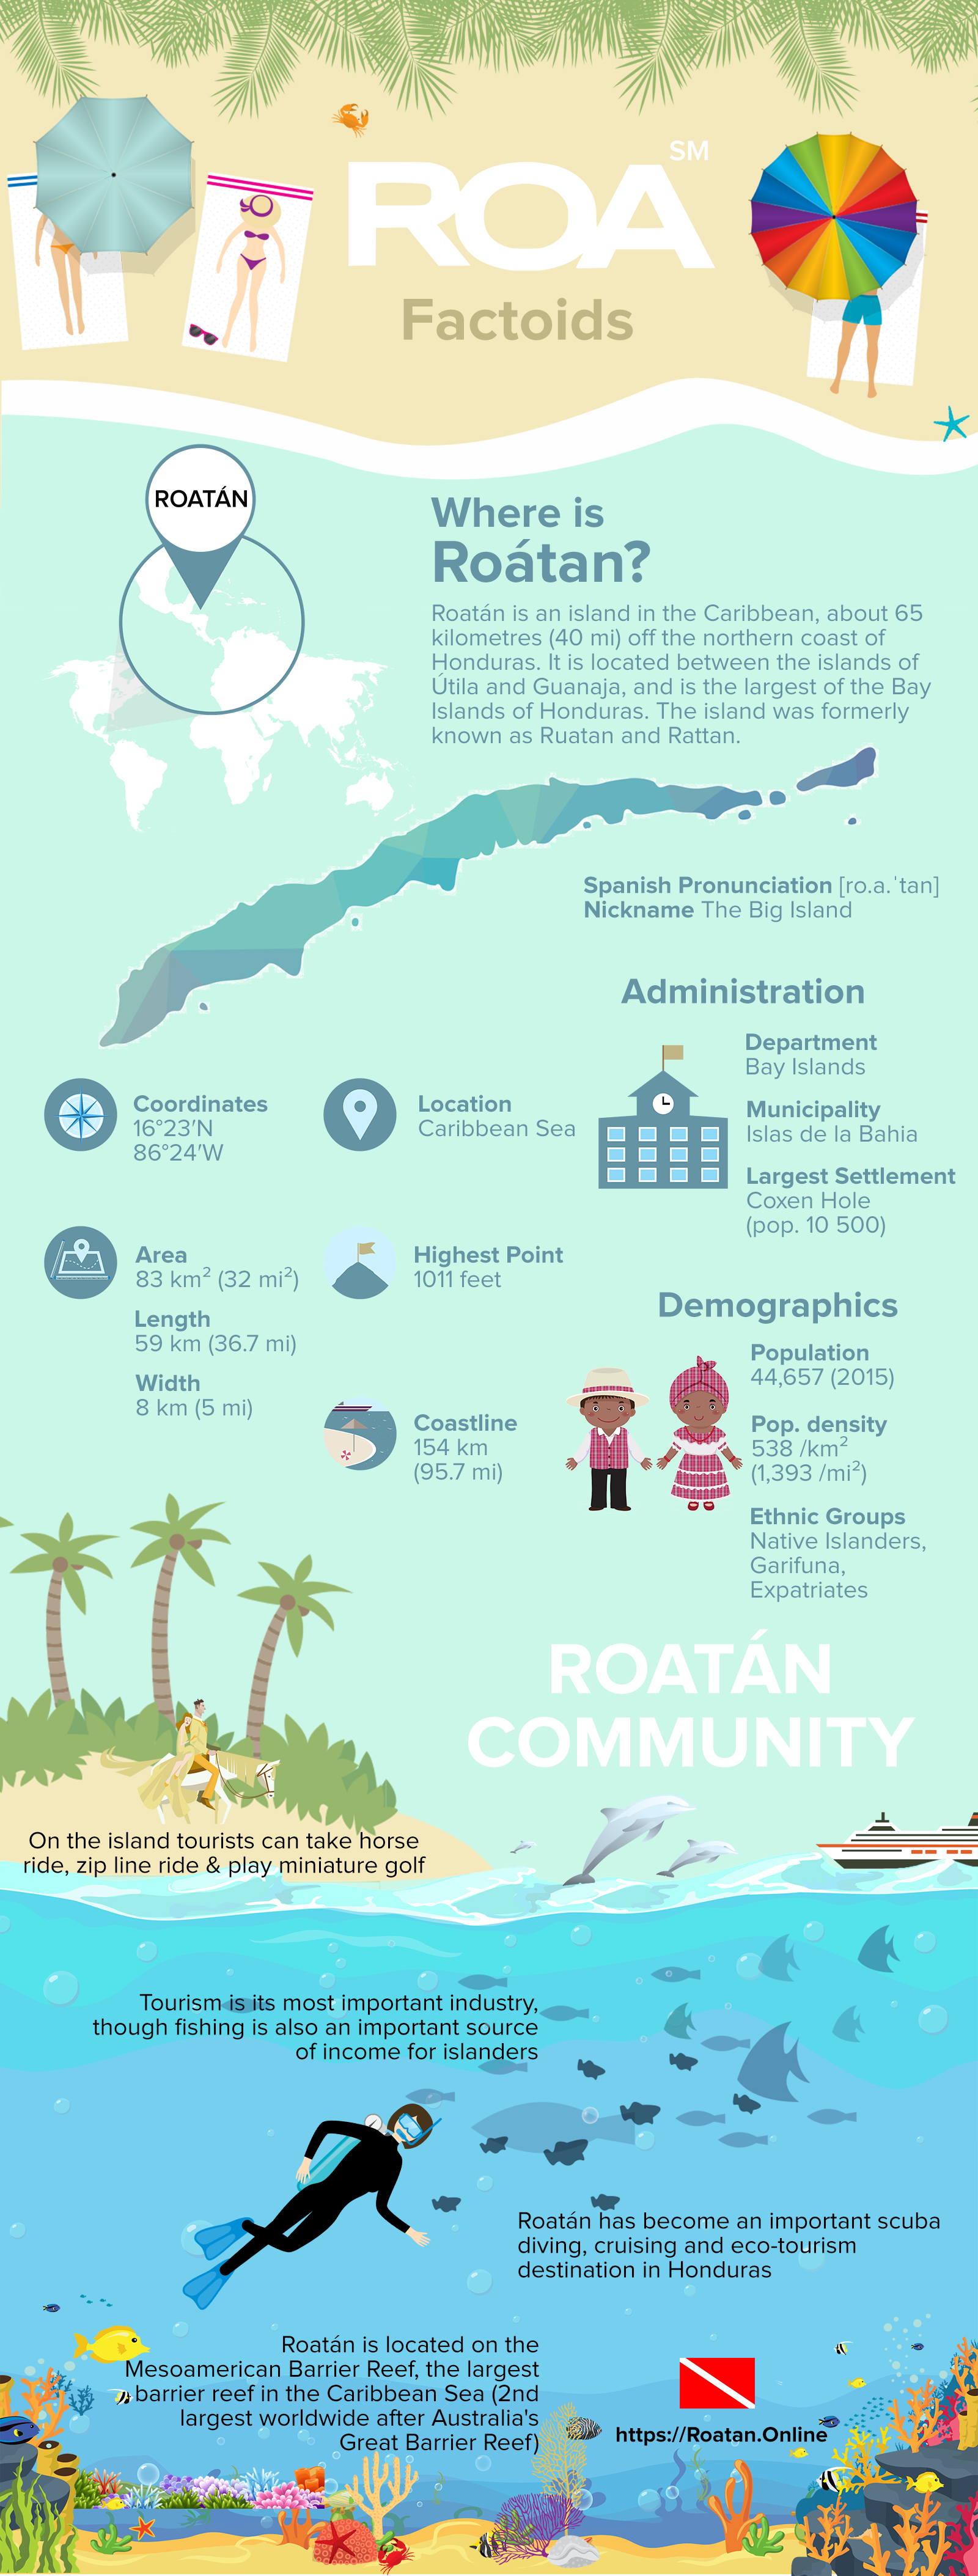 Roatan Island Overview Infographic